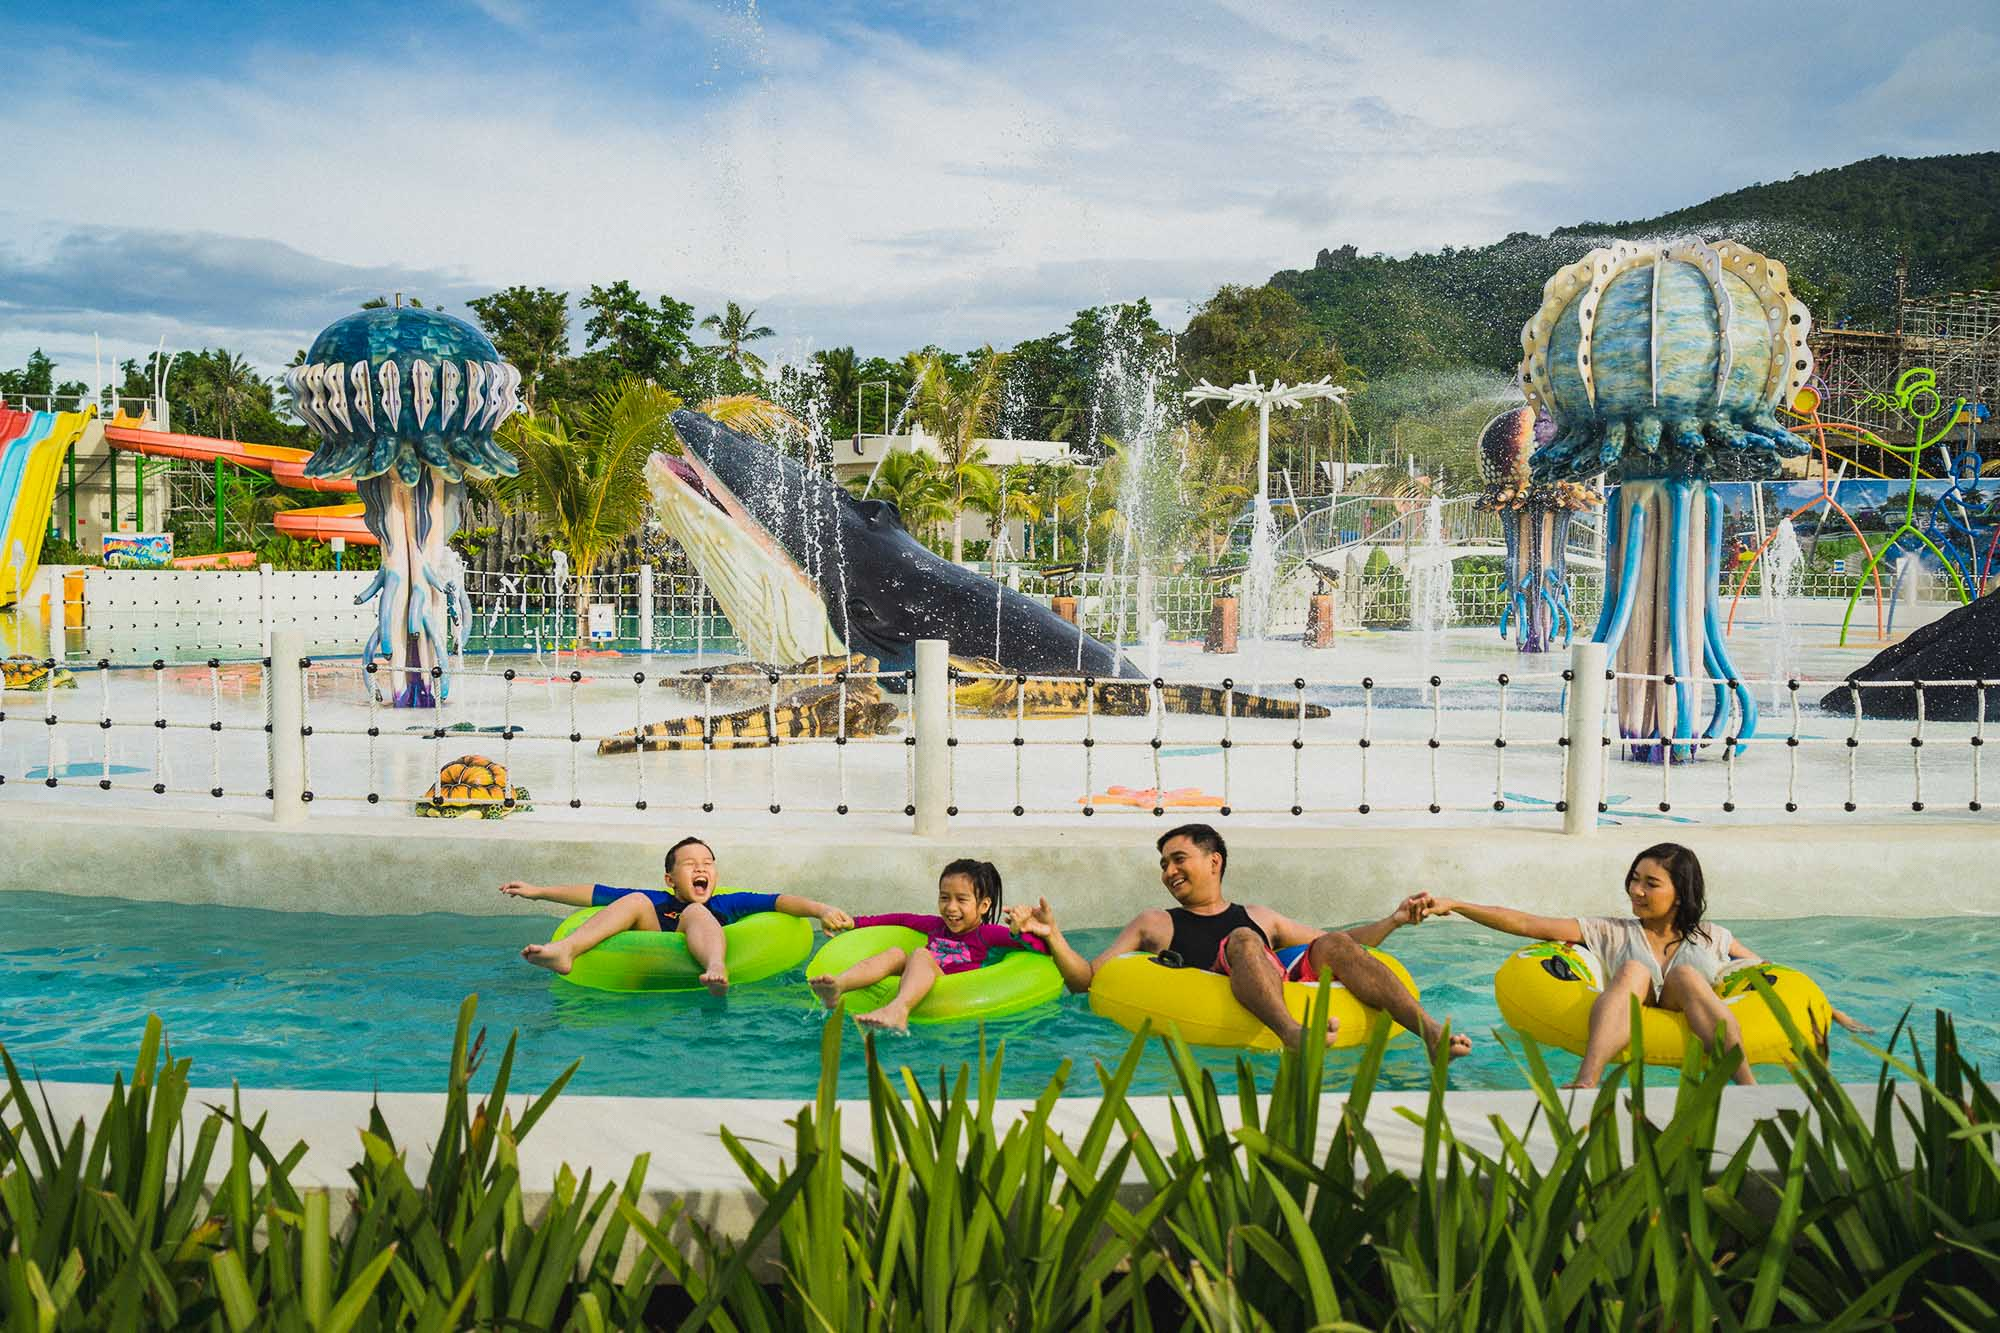 palawan-waterpark_marine-sanctuary-2